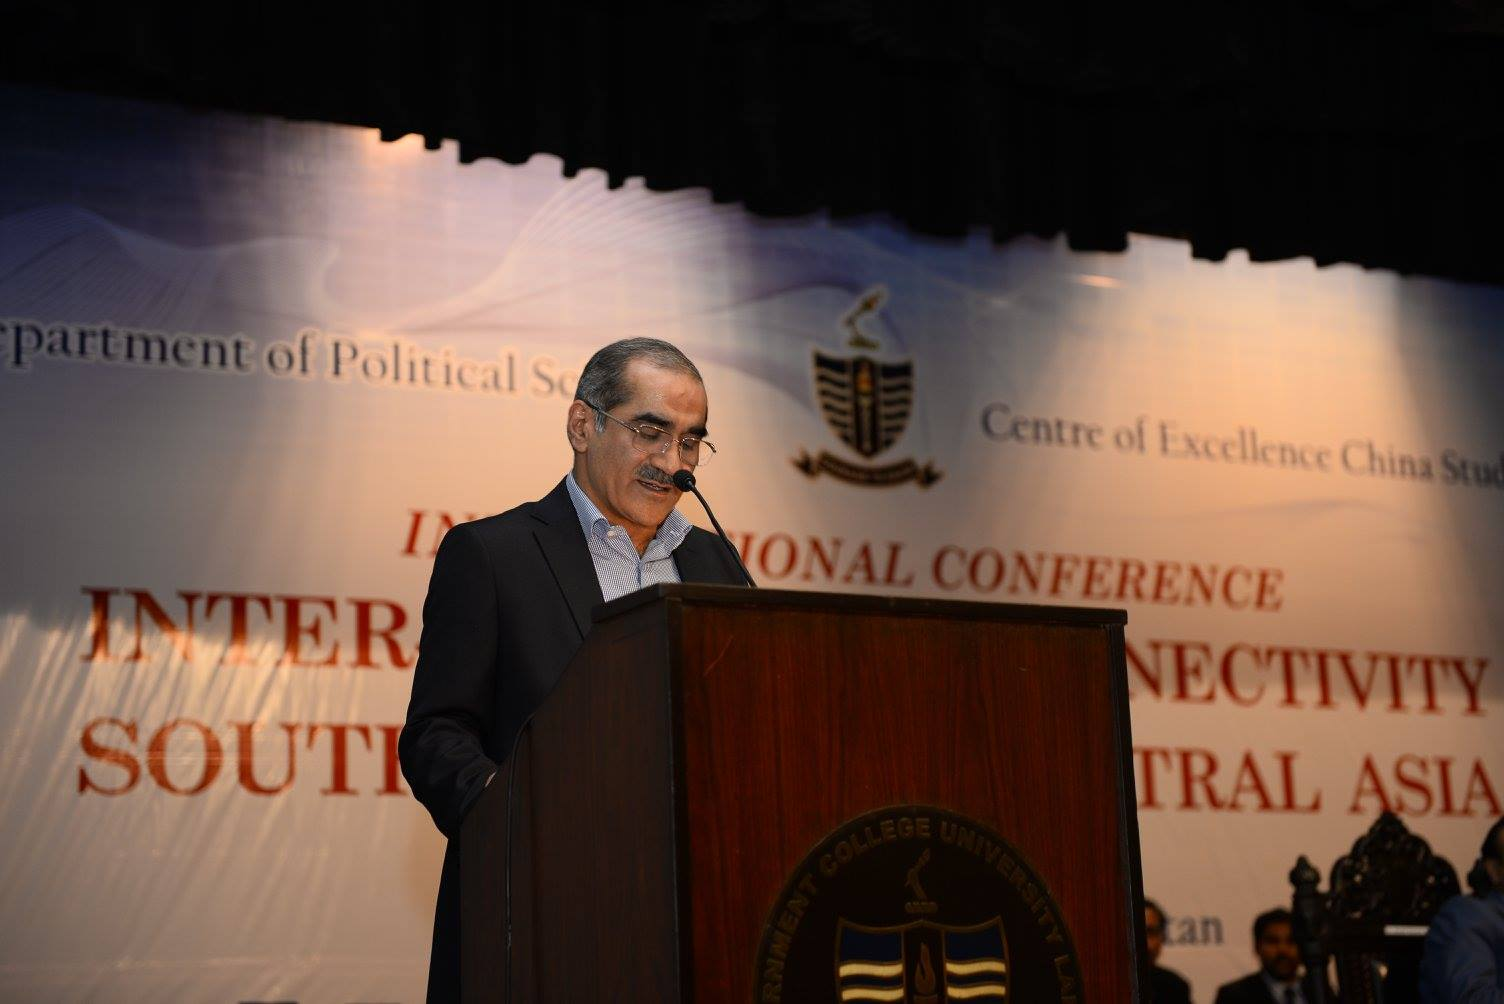 Chief Guest, Khawaja Saad Rafique addressing the Concluding Session